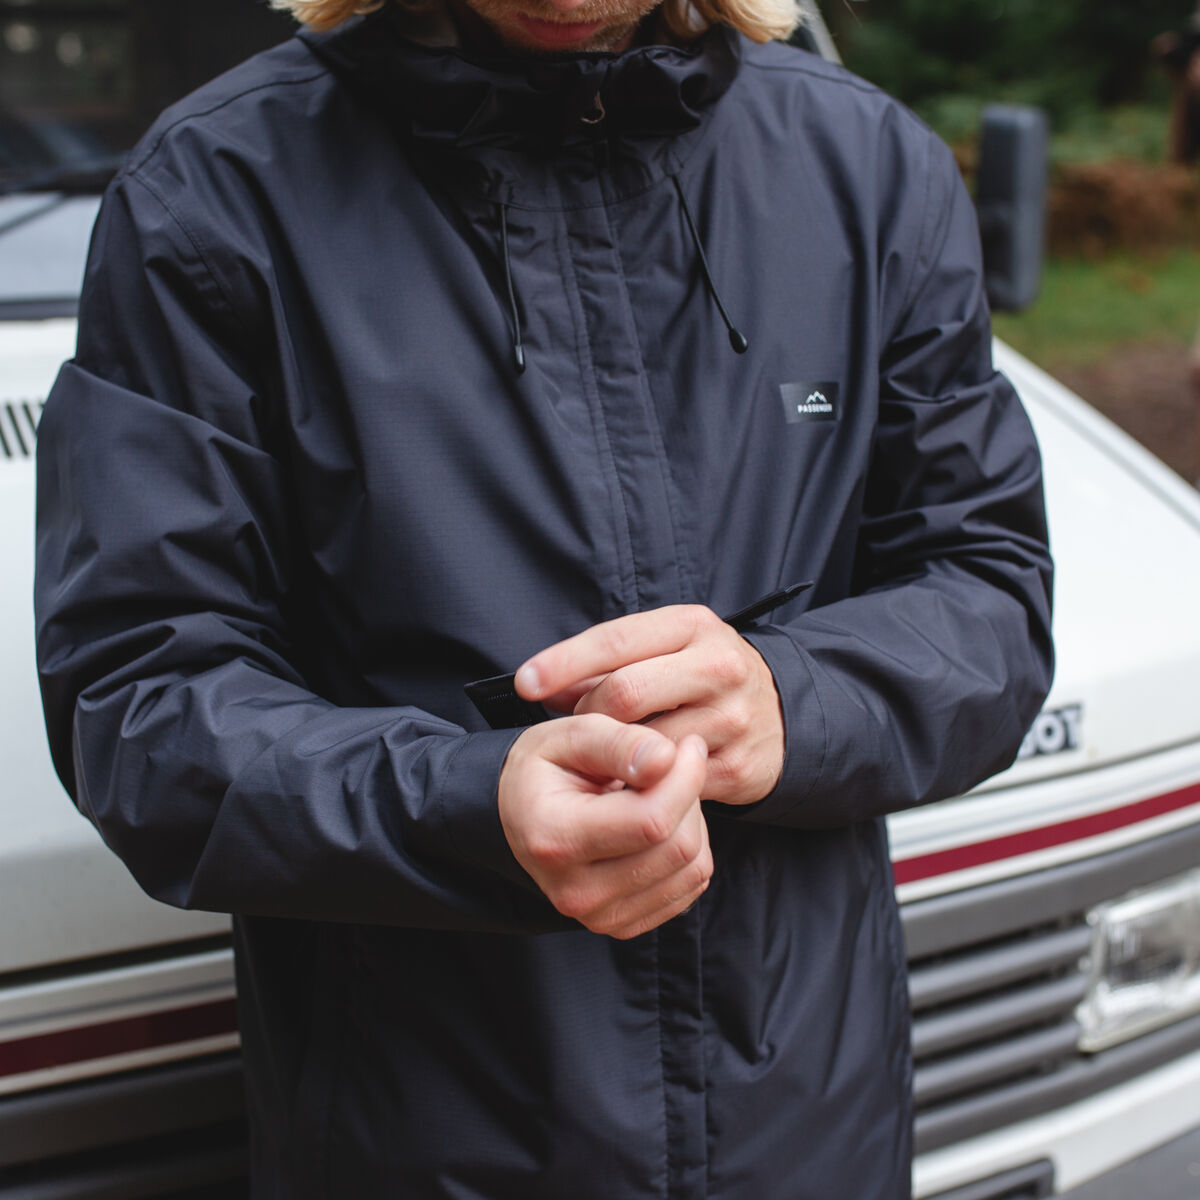 Norcal Waterproof Jacket - Black image 4